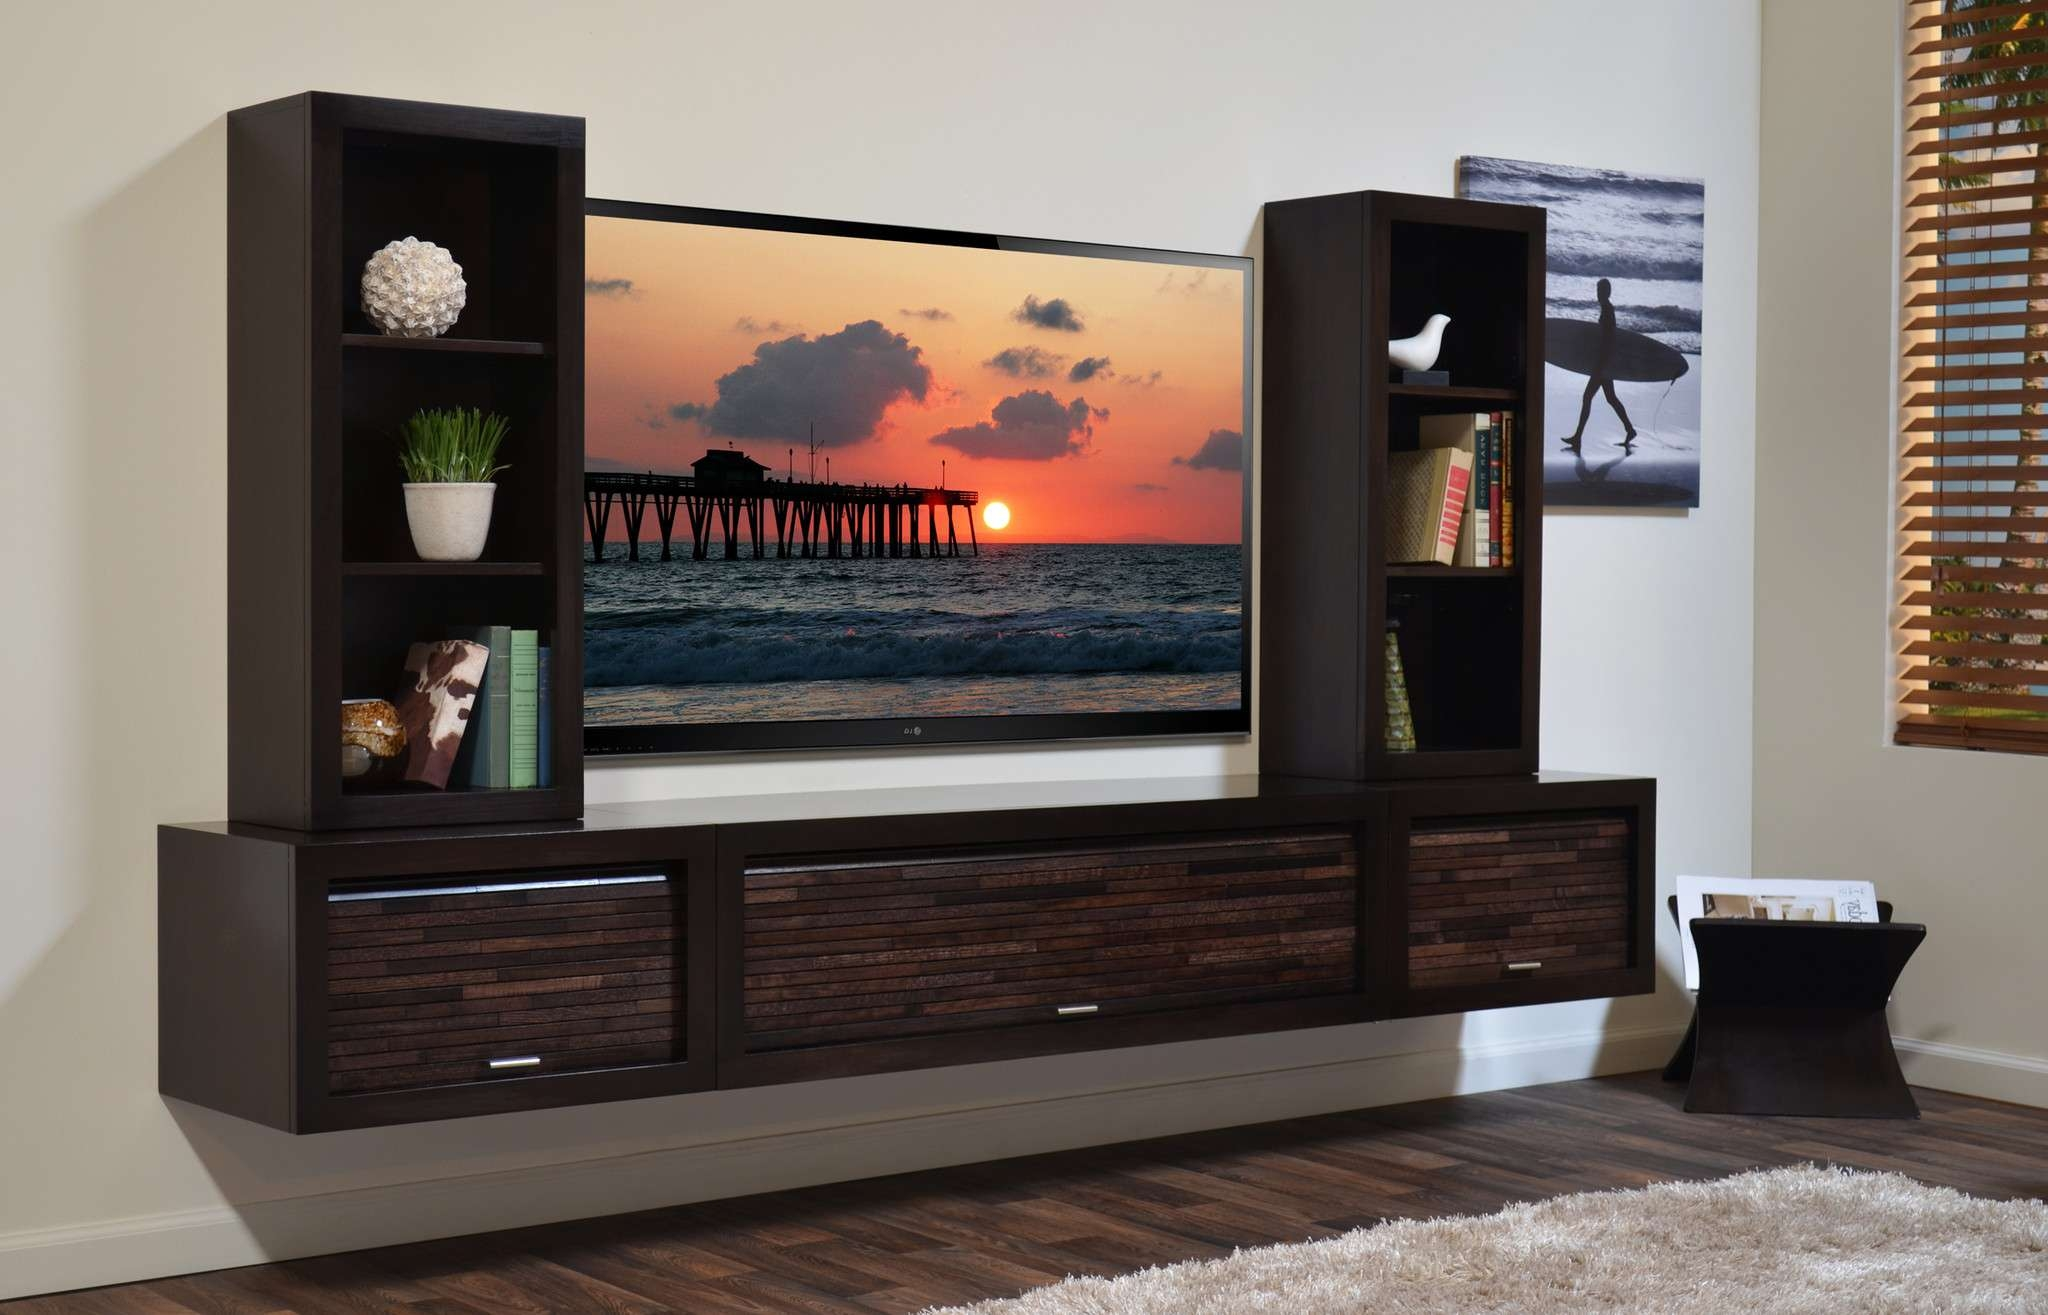 Bright And Modern Wall Entertainment Shelf Nice Ideas Floating Intended For Entertainment Center Tv Stands (View 2 of 15)